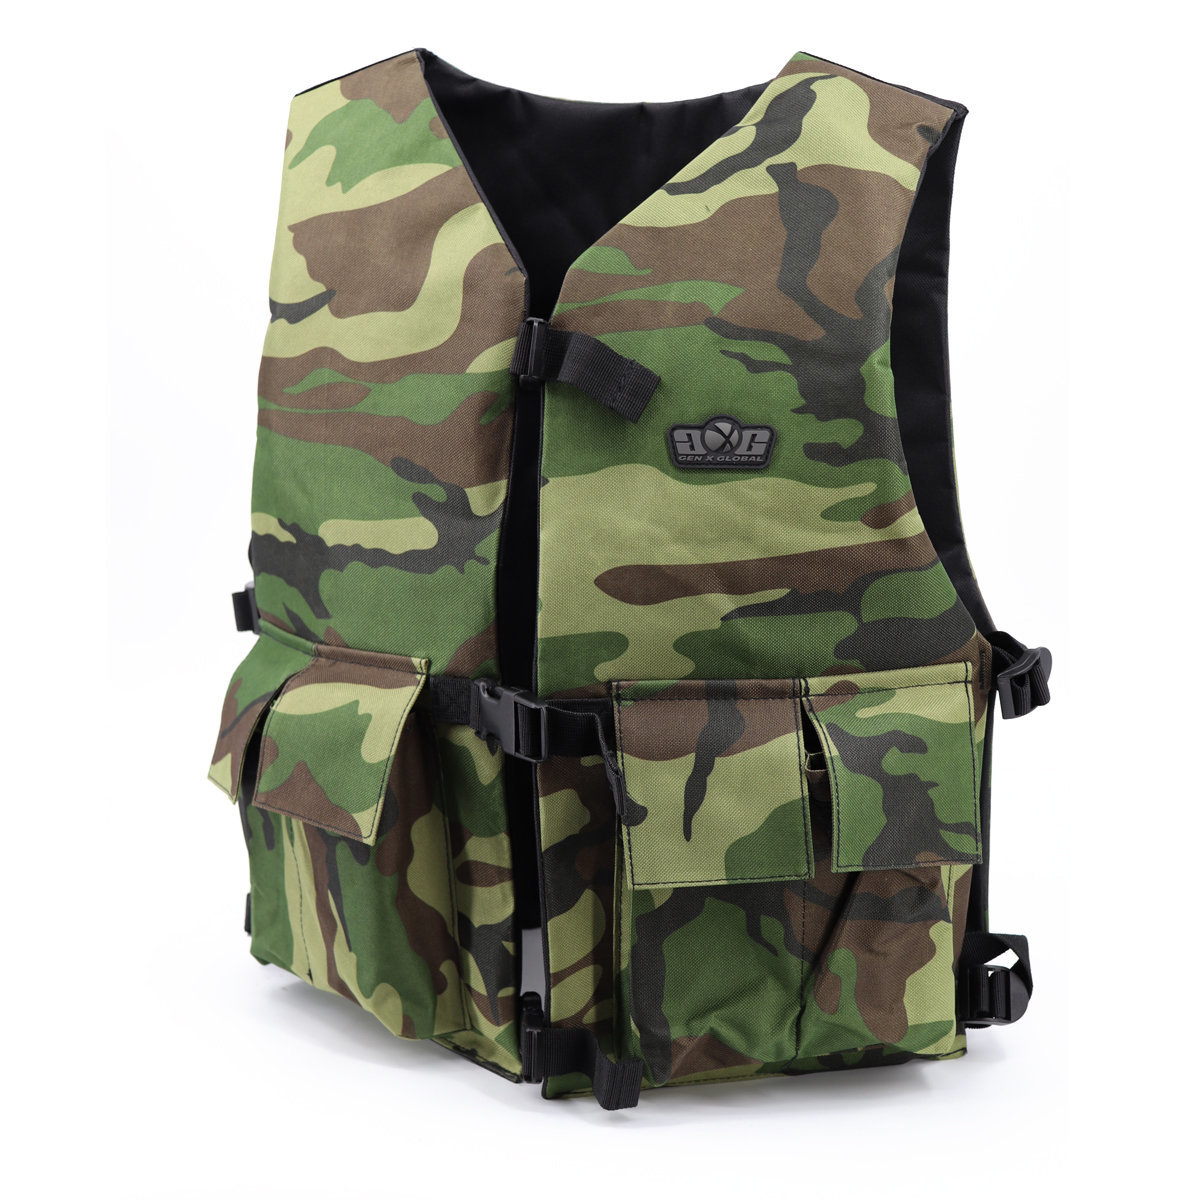 View larger image of GXG G-30 Paintball Chest Protector